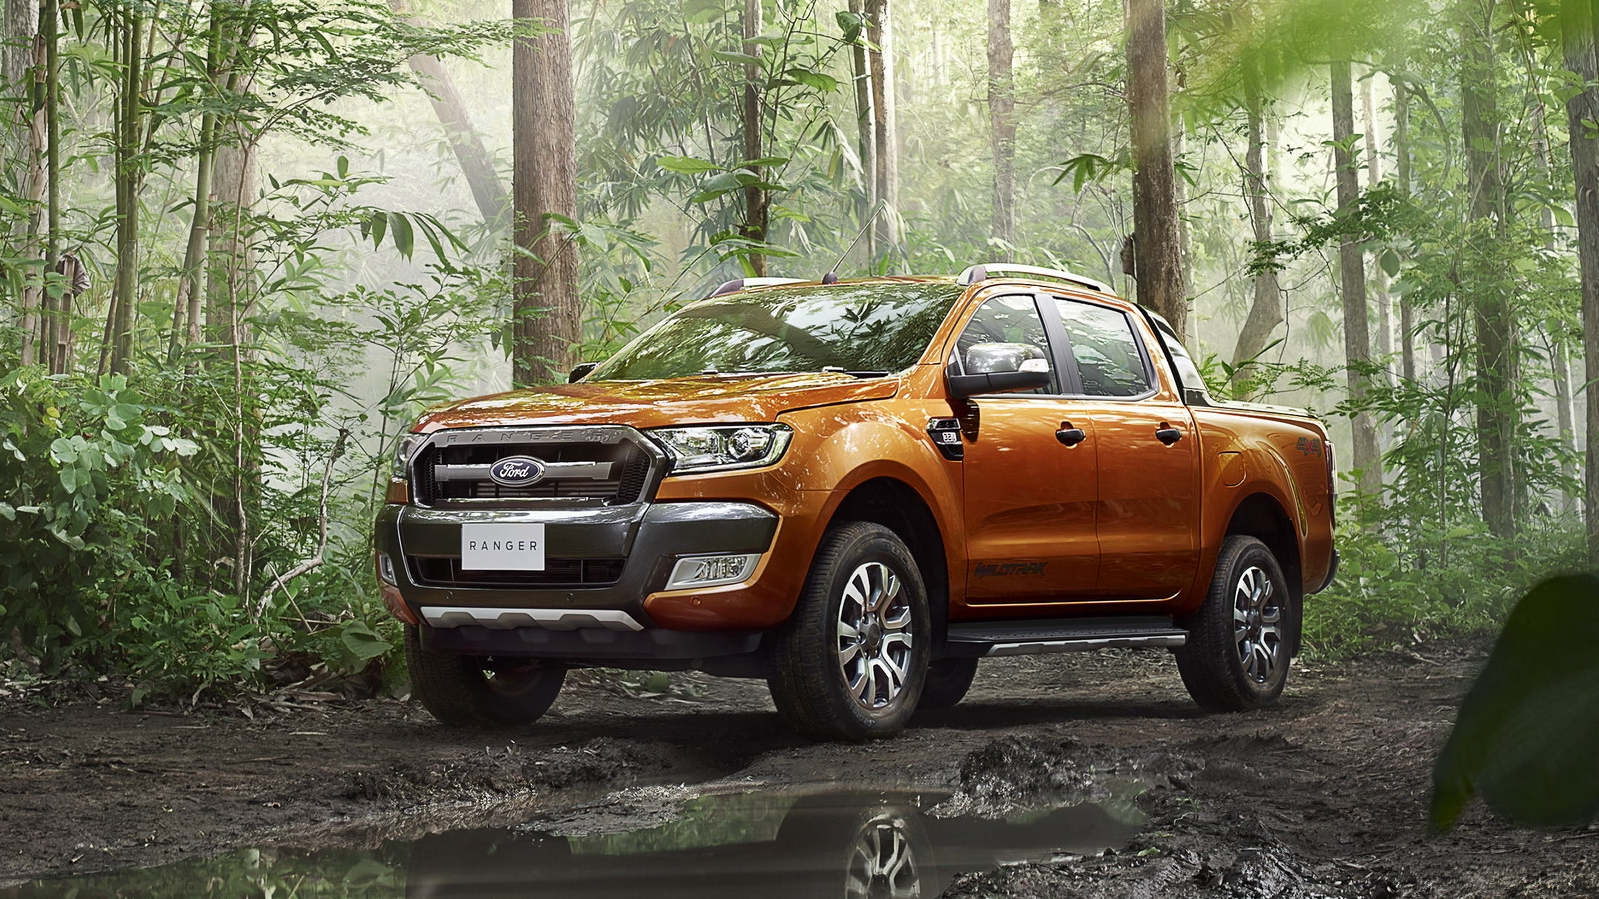 Ford has just introduced the wildtrak trim level on its all new global 2015 ford ranger pickup truck the wildtrak sits atop all other trim levels in the